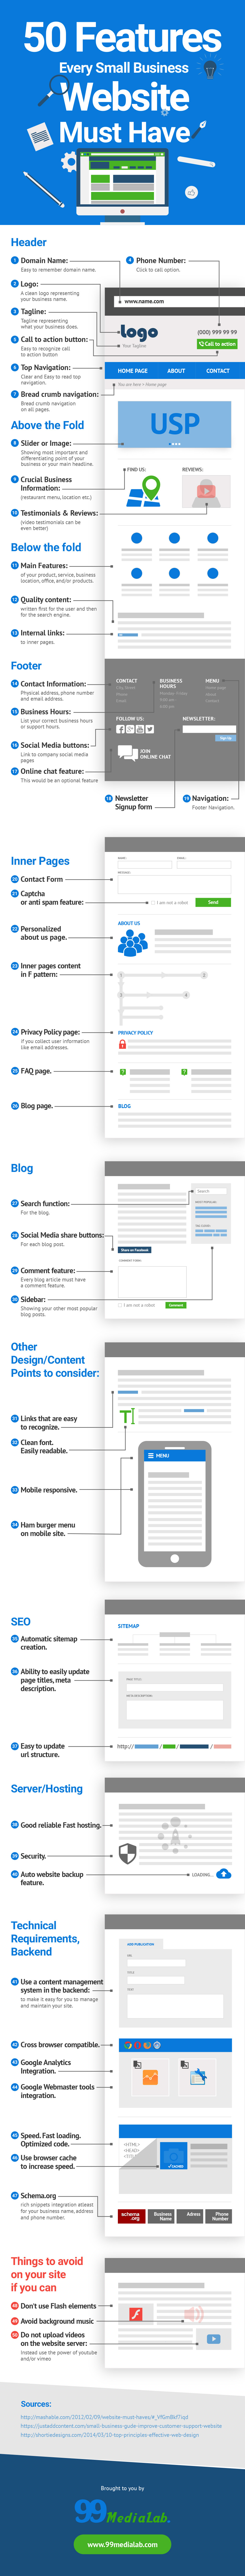 small-business-website-feature-must-have-infographic